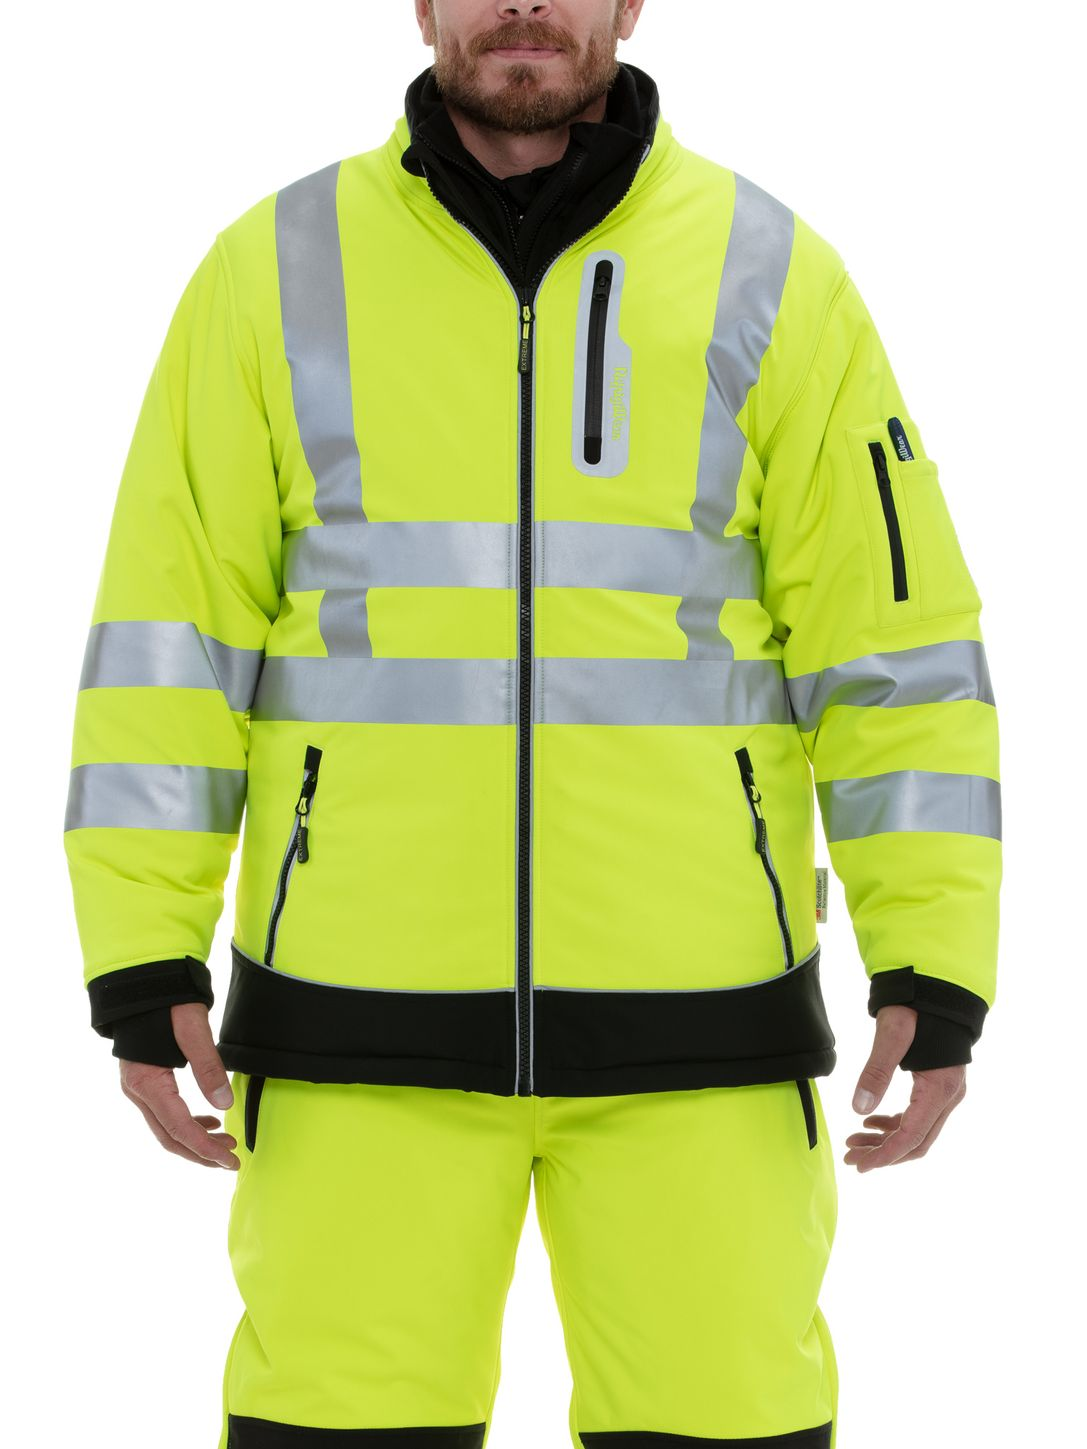 RefrigiWear 0796 HiVis Extreme Collection Softshell Jacket Front Example